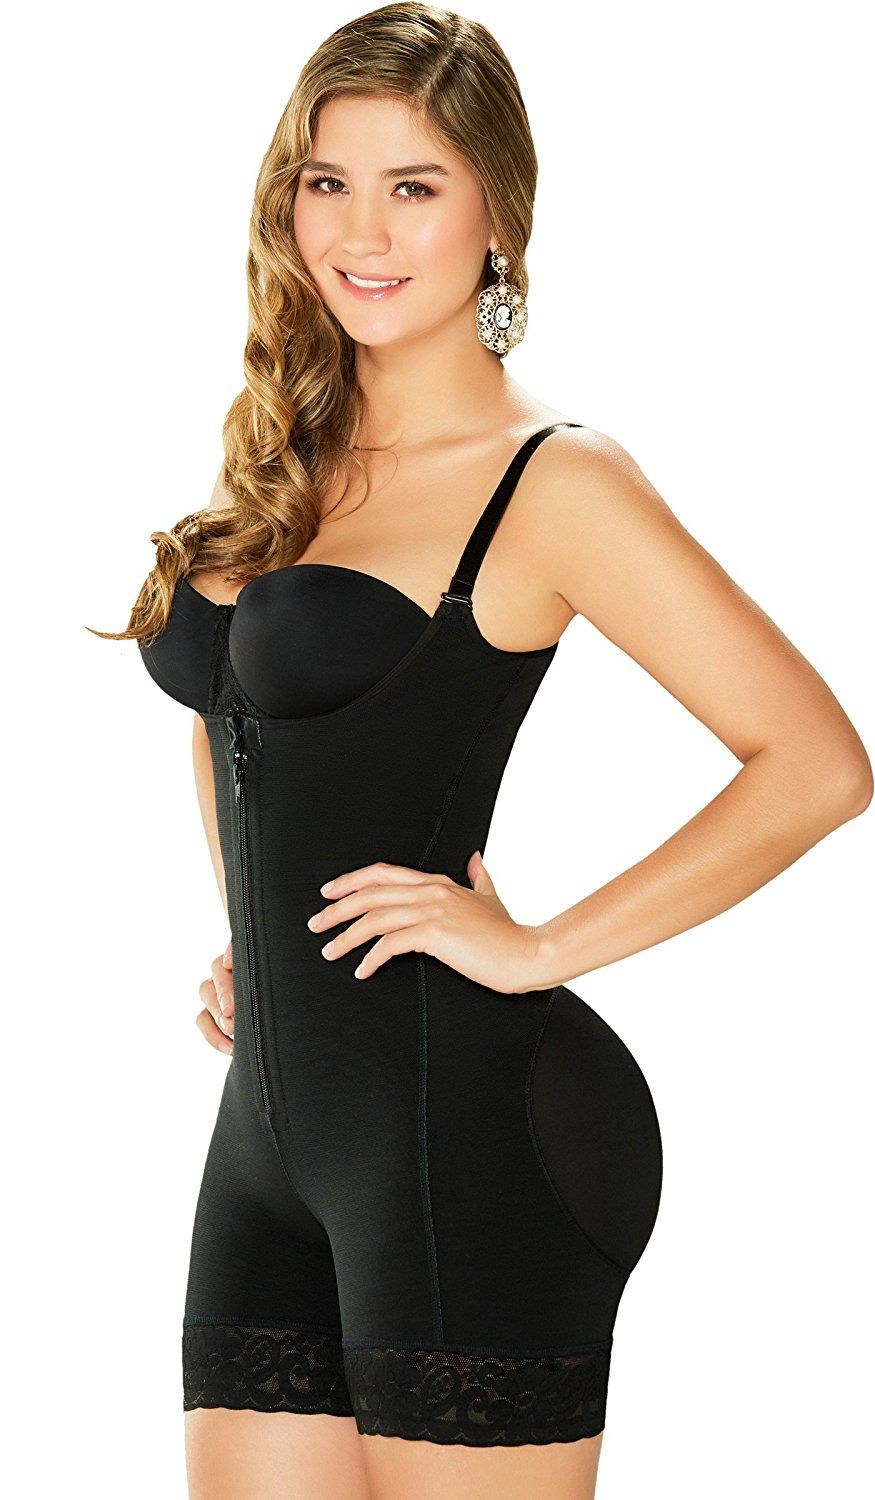 b38620a2c66d3 VEAMORS Sexy Womens Open Crotch Body Shaper